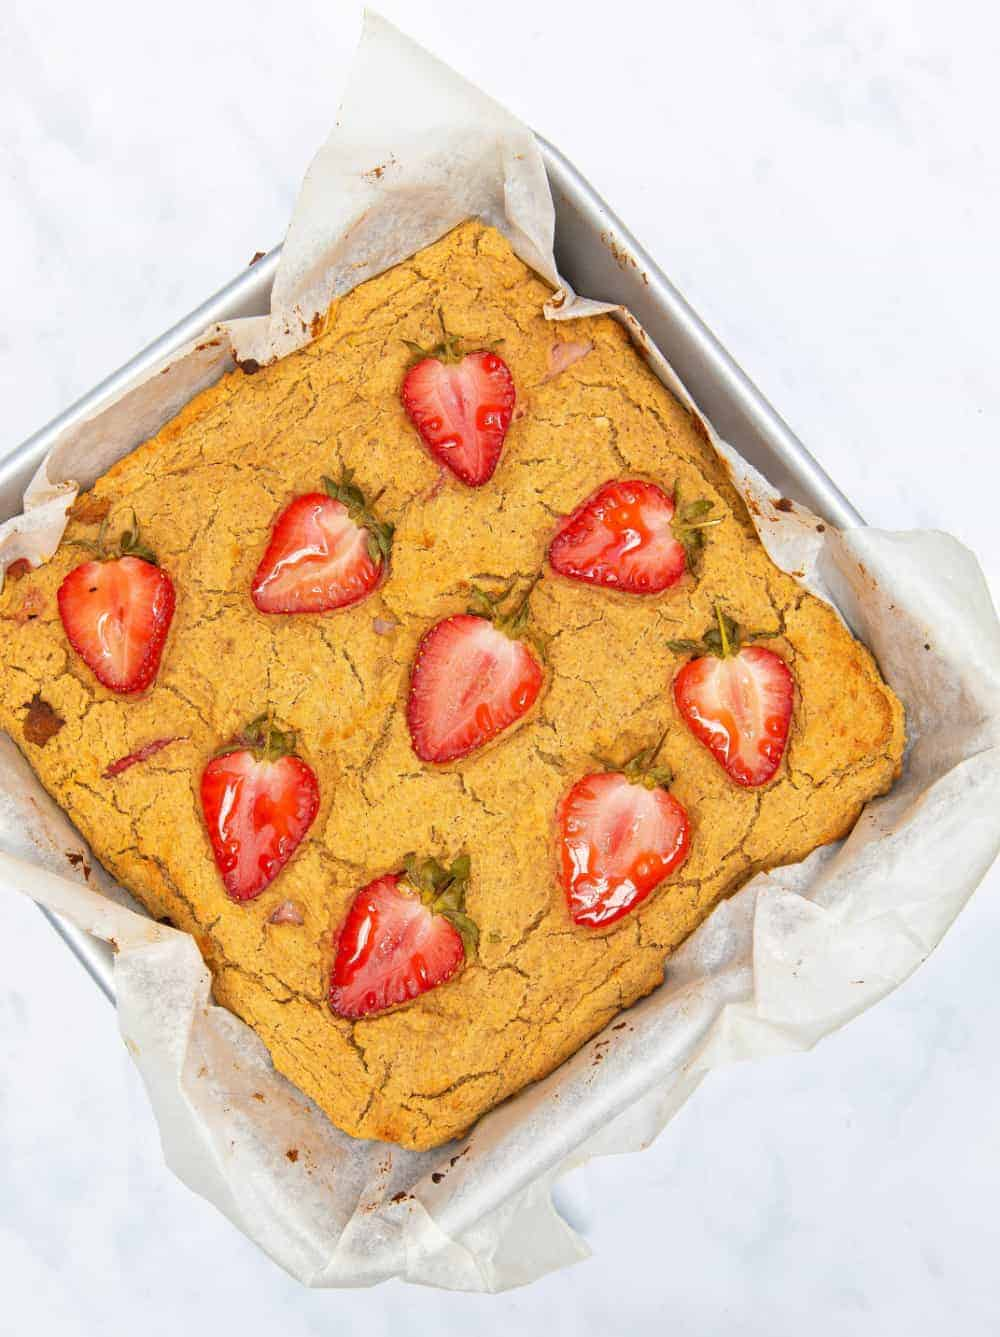 Peanut Butter Strawberry Blondies - baking tray